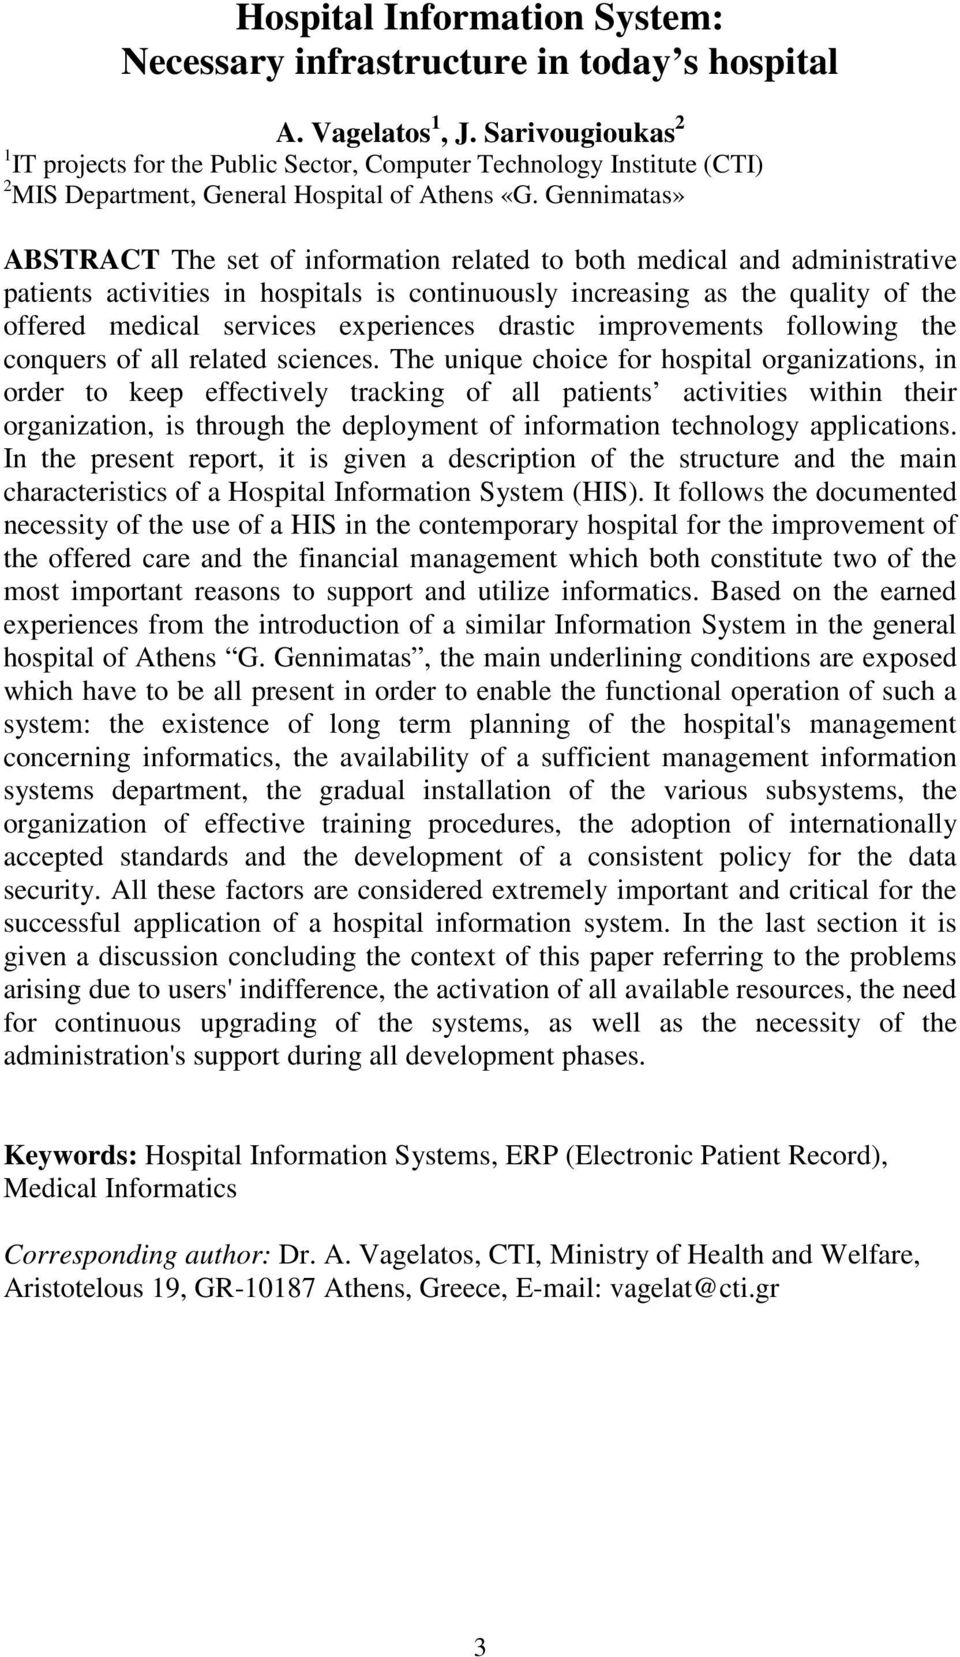 Gennimatas» ABSTRACT The set of information related to both medical and administrative patients activities in hospitals is continuously increasing as the quality of the offered medical services